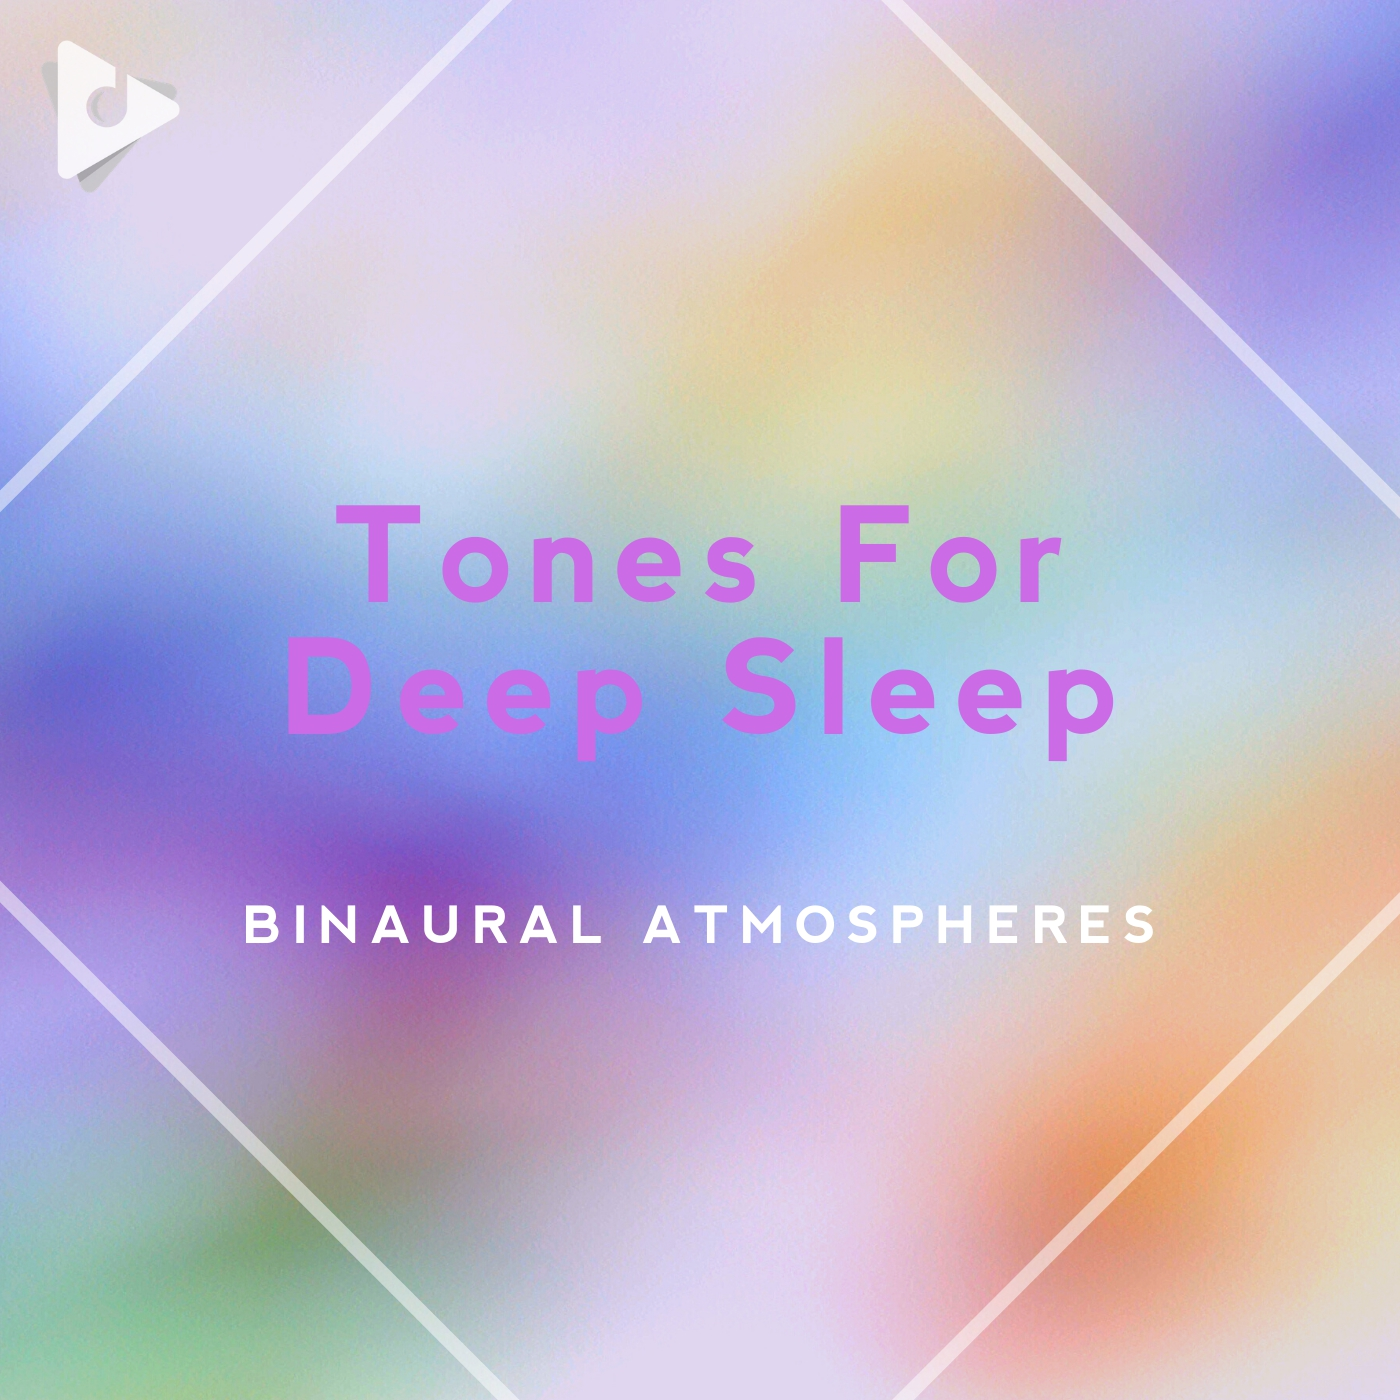 Tones For Deep Sleep